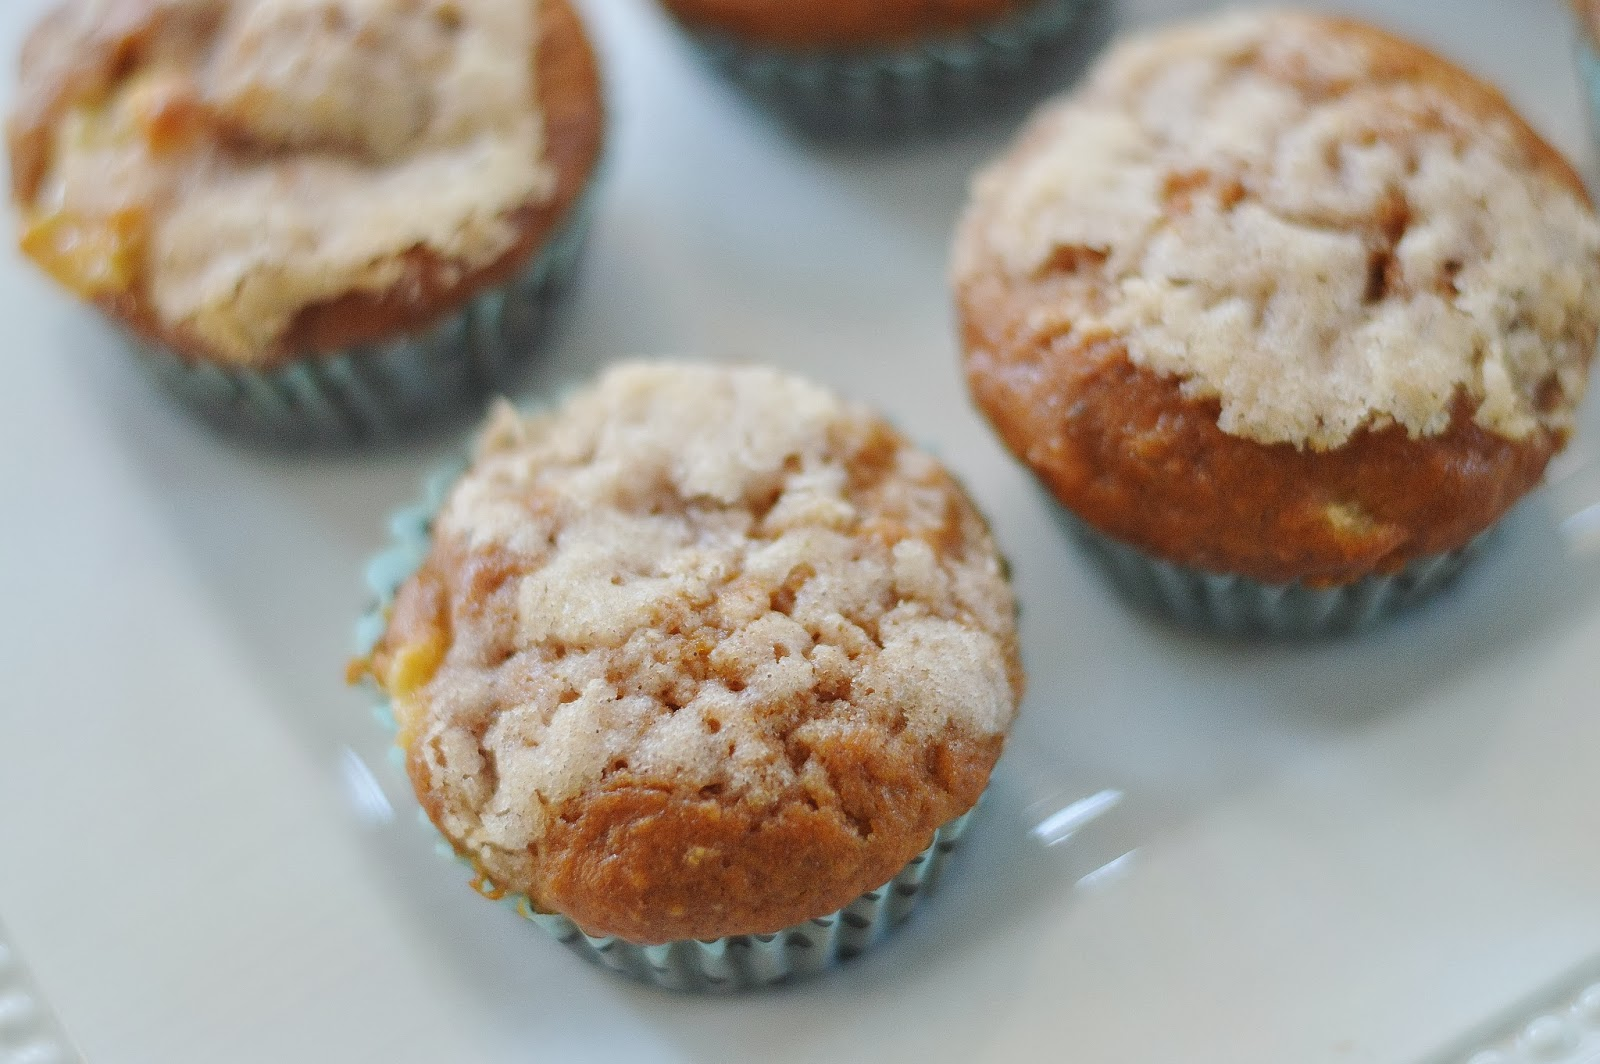 The Art of Comfort Baking: Pumpkin Apple Streusel Muffins